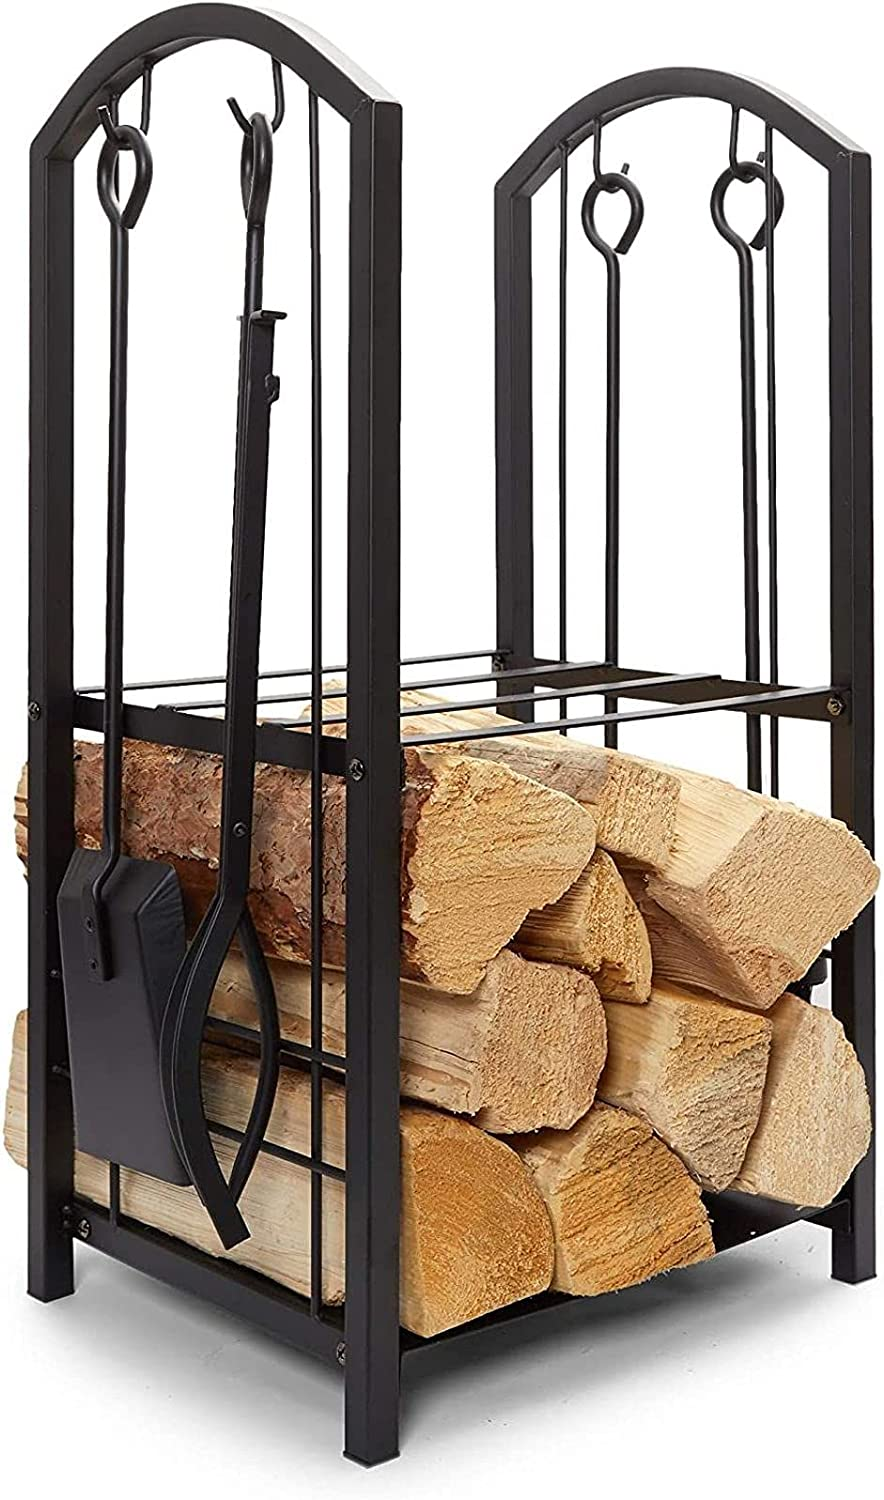 Firewood Rack with Fireplace Oakland Mall Store Tools Outdoo Indoor for Log Holder